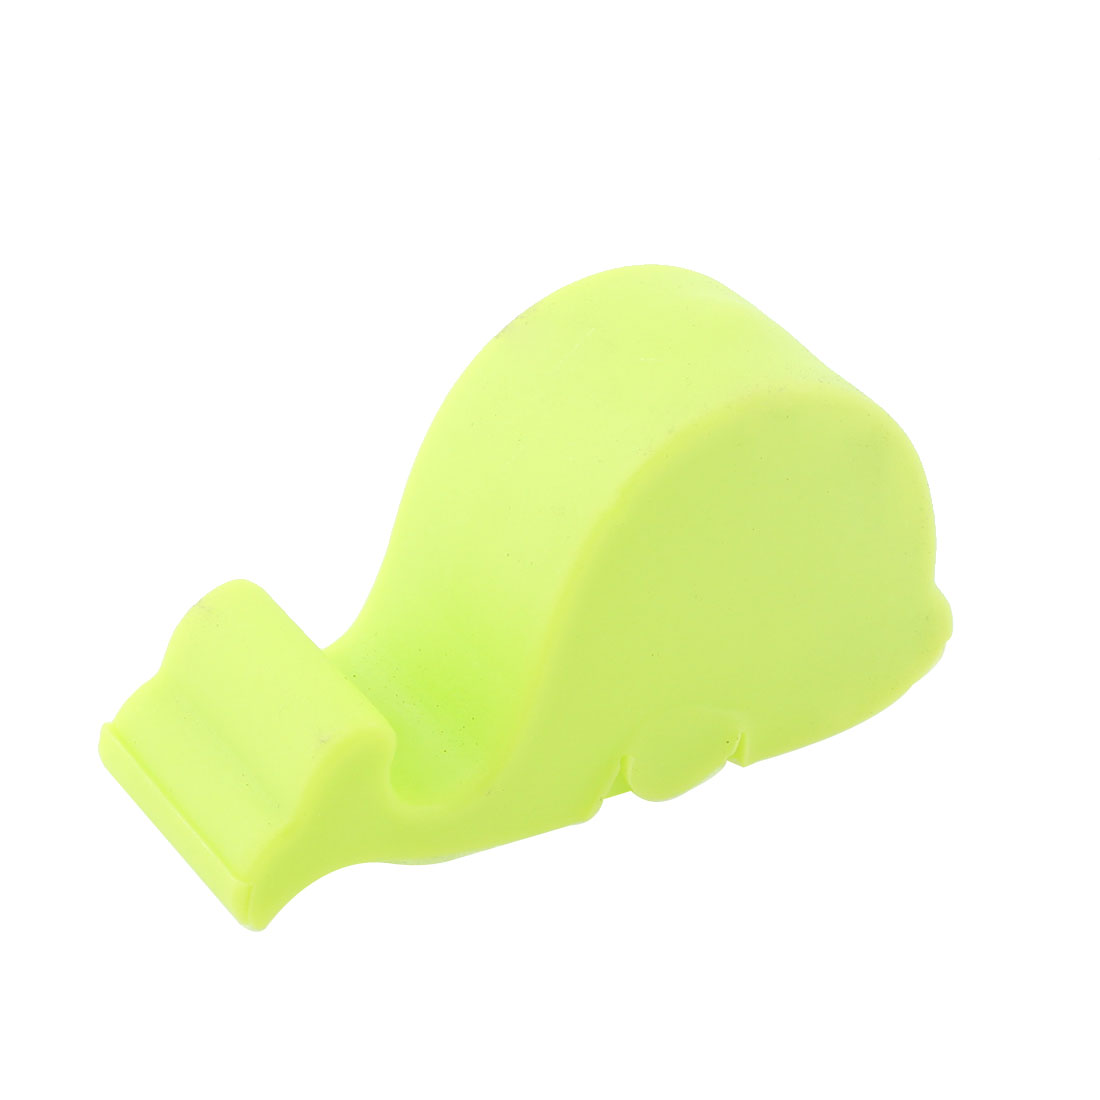 Green Plastic Dolphin Shaped MP4 Cellphone Phone Stand Holder Rack Bracket